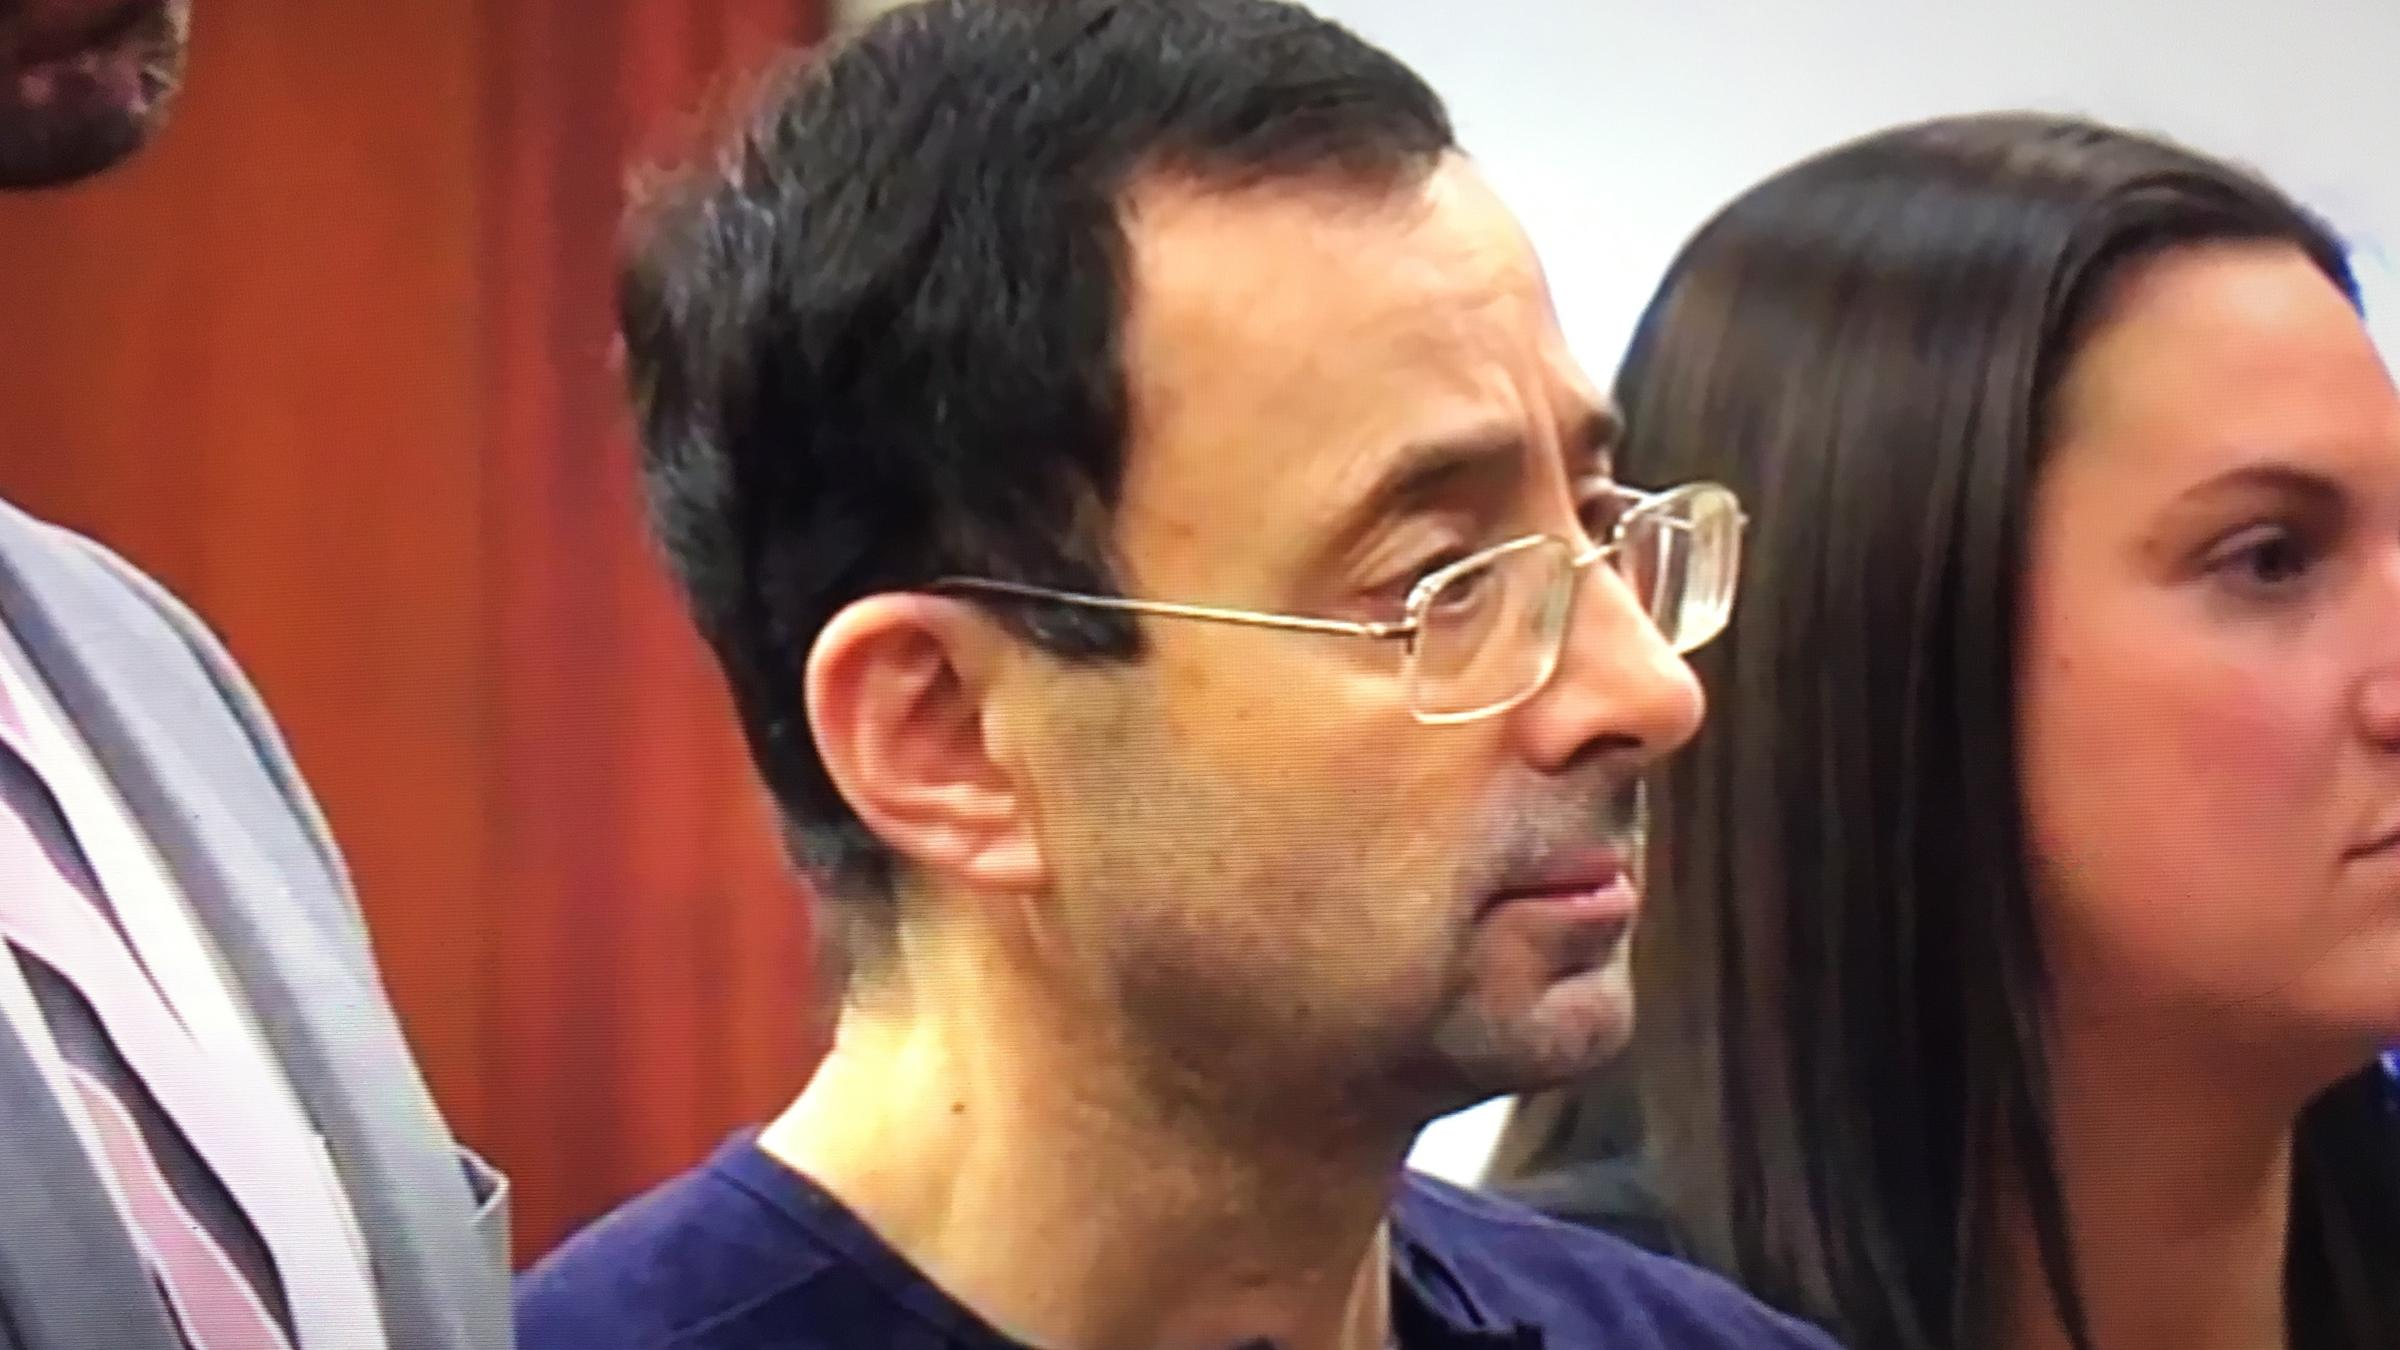 Top gymnastics coach with ties to Larry Nassar under investigation